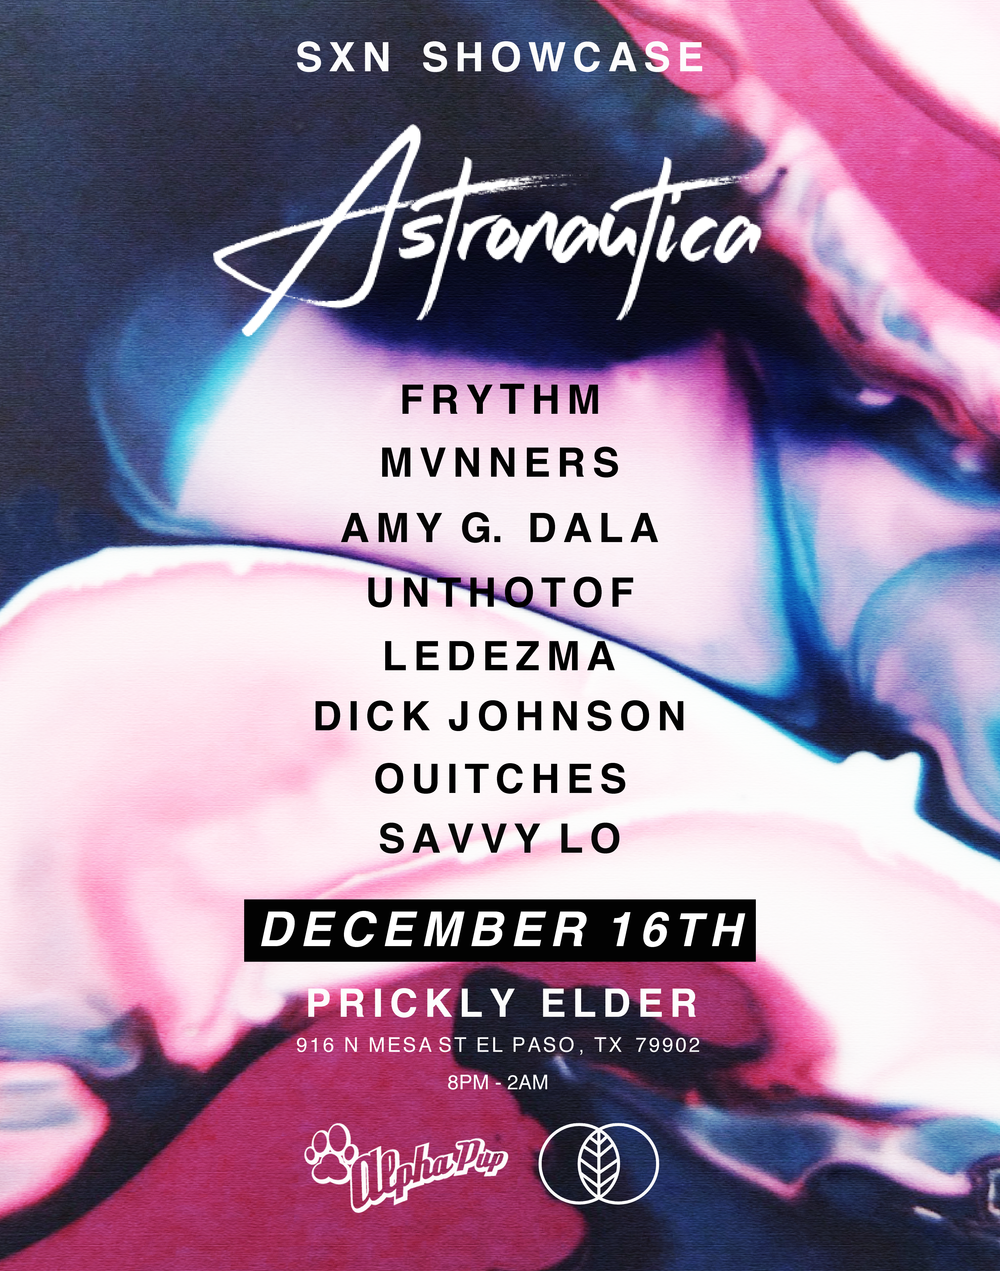 SXN Showcase @ Prickly Elder   Special Guest:  Astronautica  ( Alpha Pup Records )  https://soundcloud.com/astronautica    SXN  Support:  mvnners  https://soundcloud.com/mvnners  Frythm  https://soundcloud.com/frythm  Amy G. Dala  https://soundcloud.com/amyg_dala  UNTHOTOF  https://soundcloud.com/unthotof  Ledezma  https://soundcloud.com/mledezma  Dick Johnson   https://www.instagram.com/nosnhojjj/  ouitches  https://www.instagram.com/ouitches/   Visuals by  Savvy lo   No Cover 21+